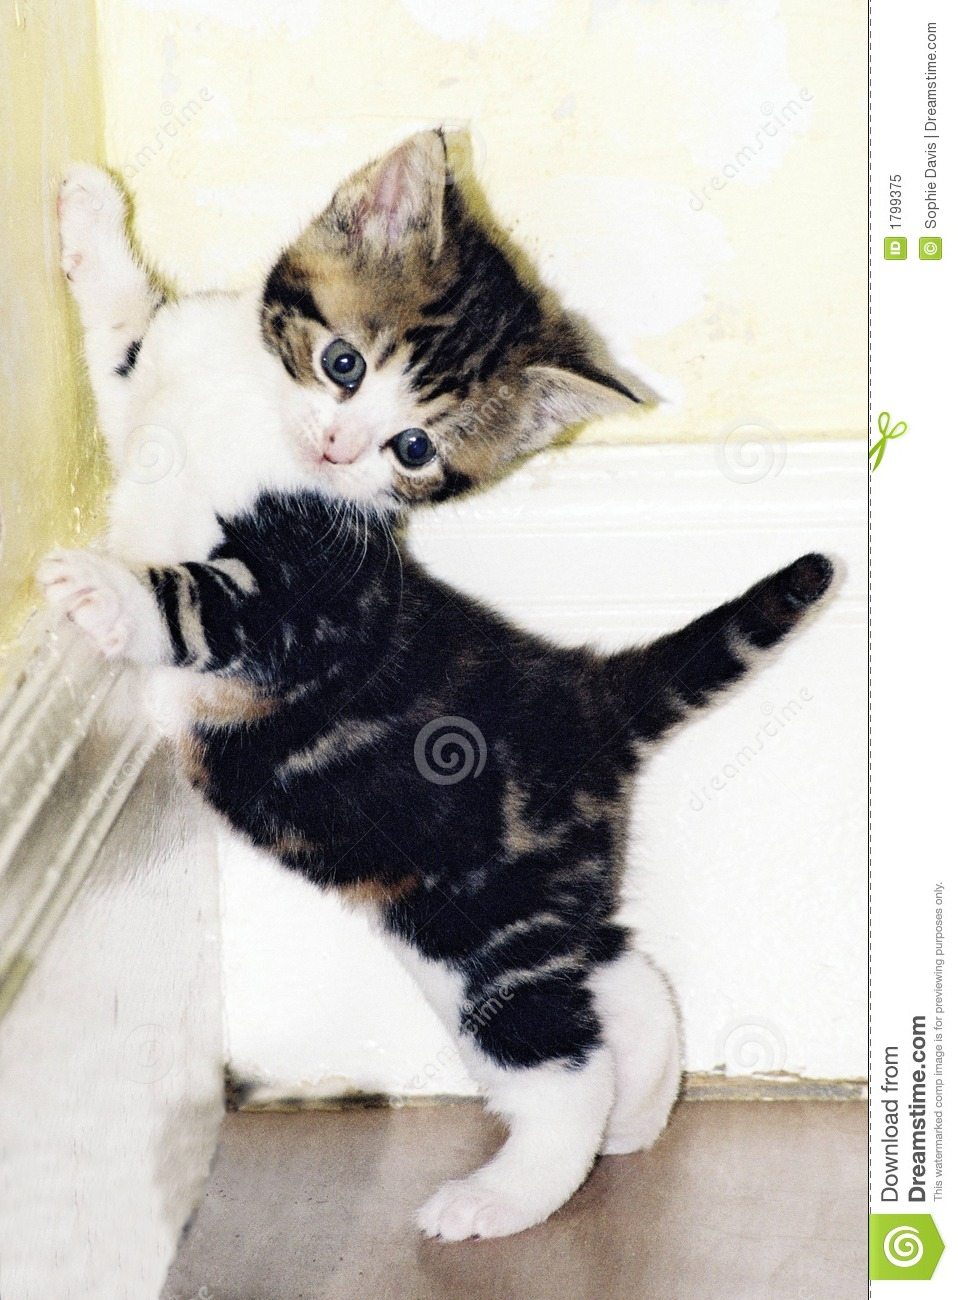 Cute kitten playing stock image Image of tabby playing